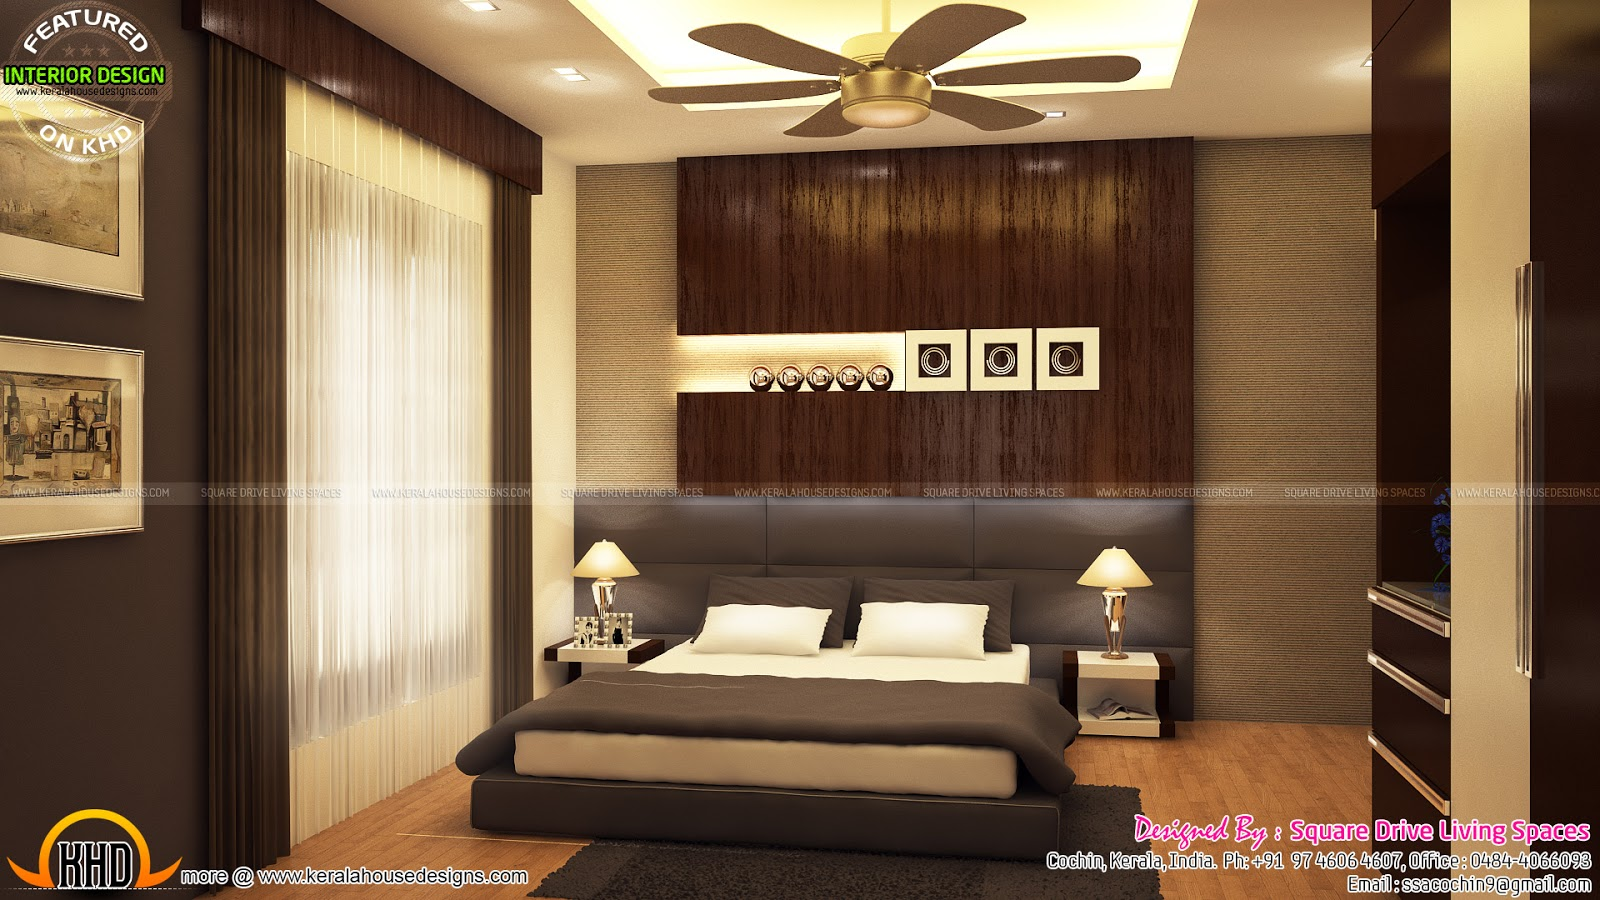 Interior designs of master bedroom living kitchen and Home interior design bedroom